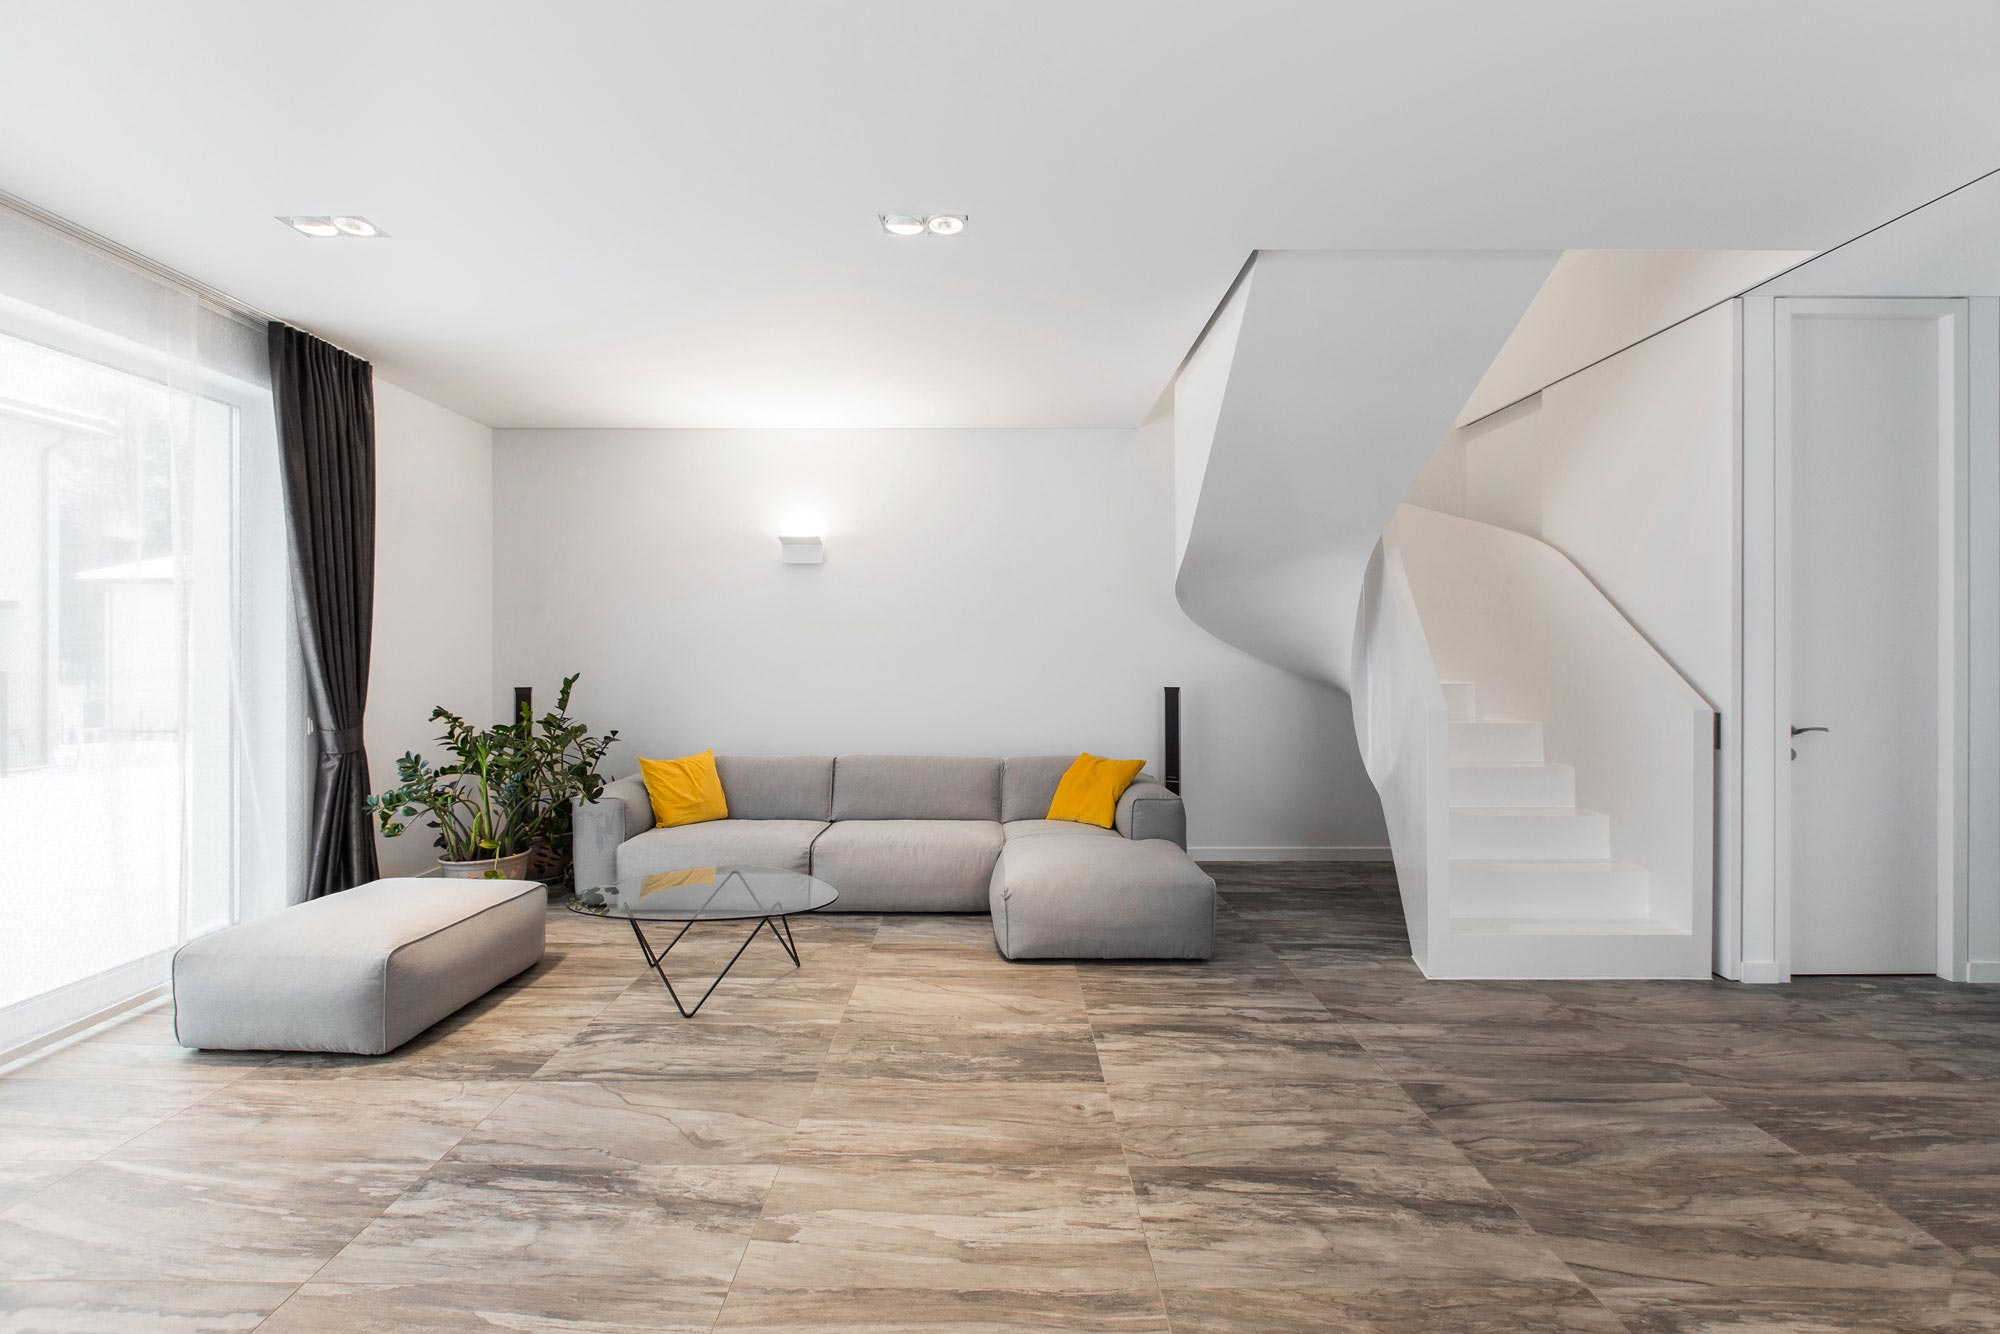 Pavilny minimalist house by ycl studio caandesign for Minimalist house blog